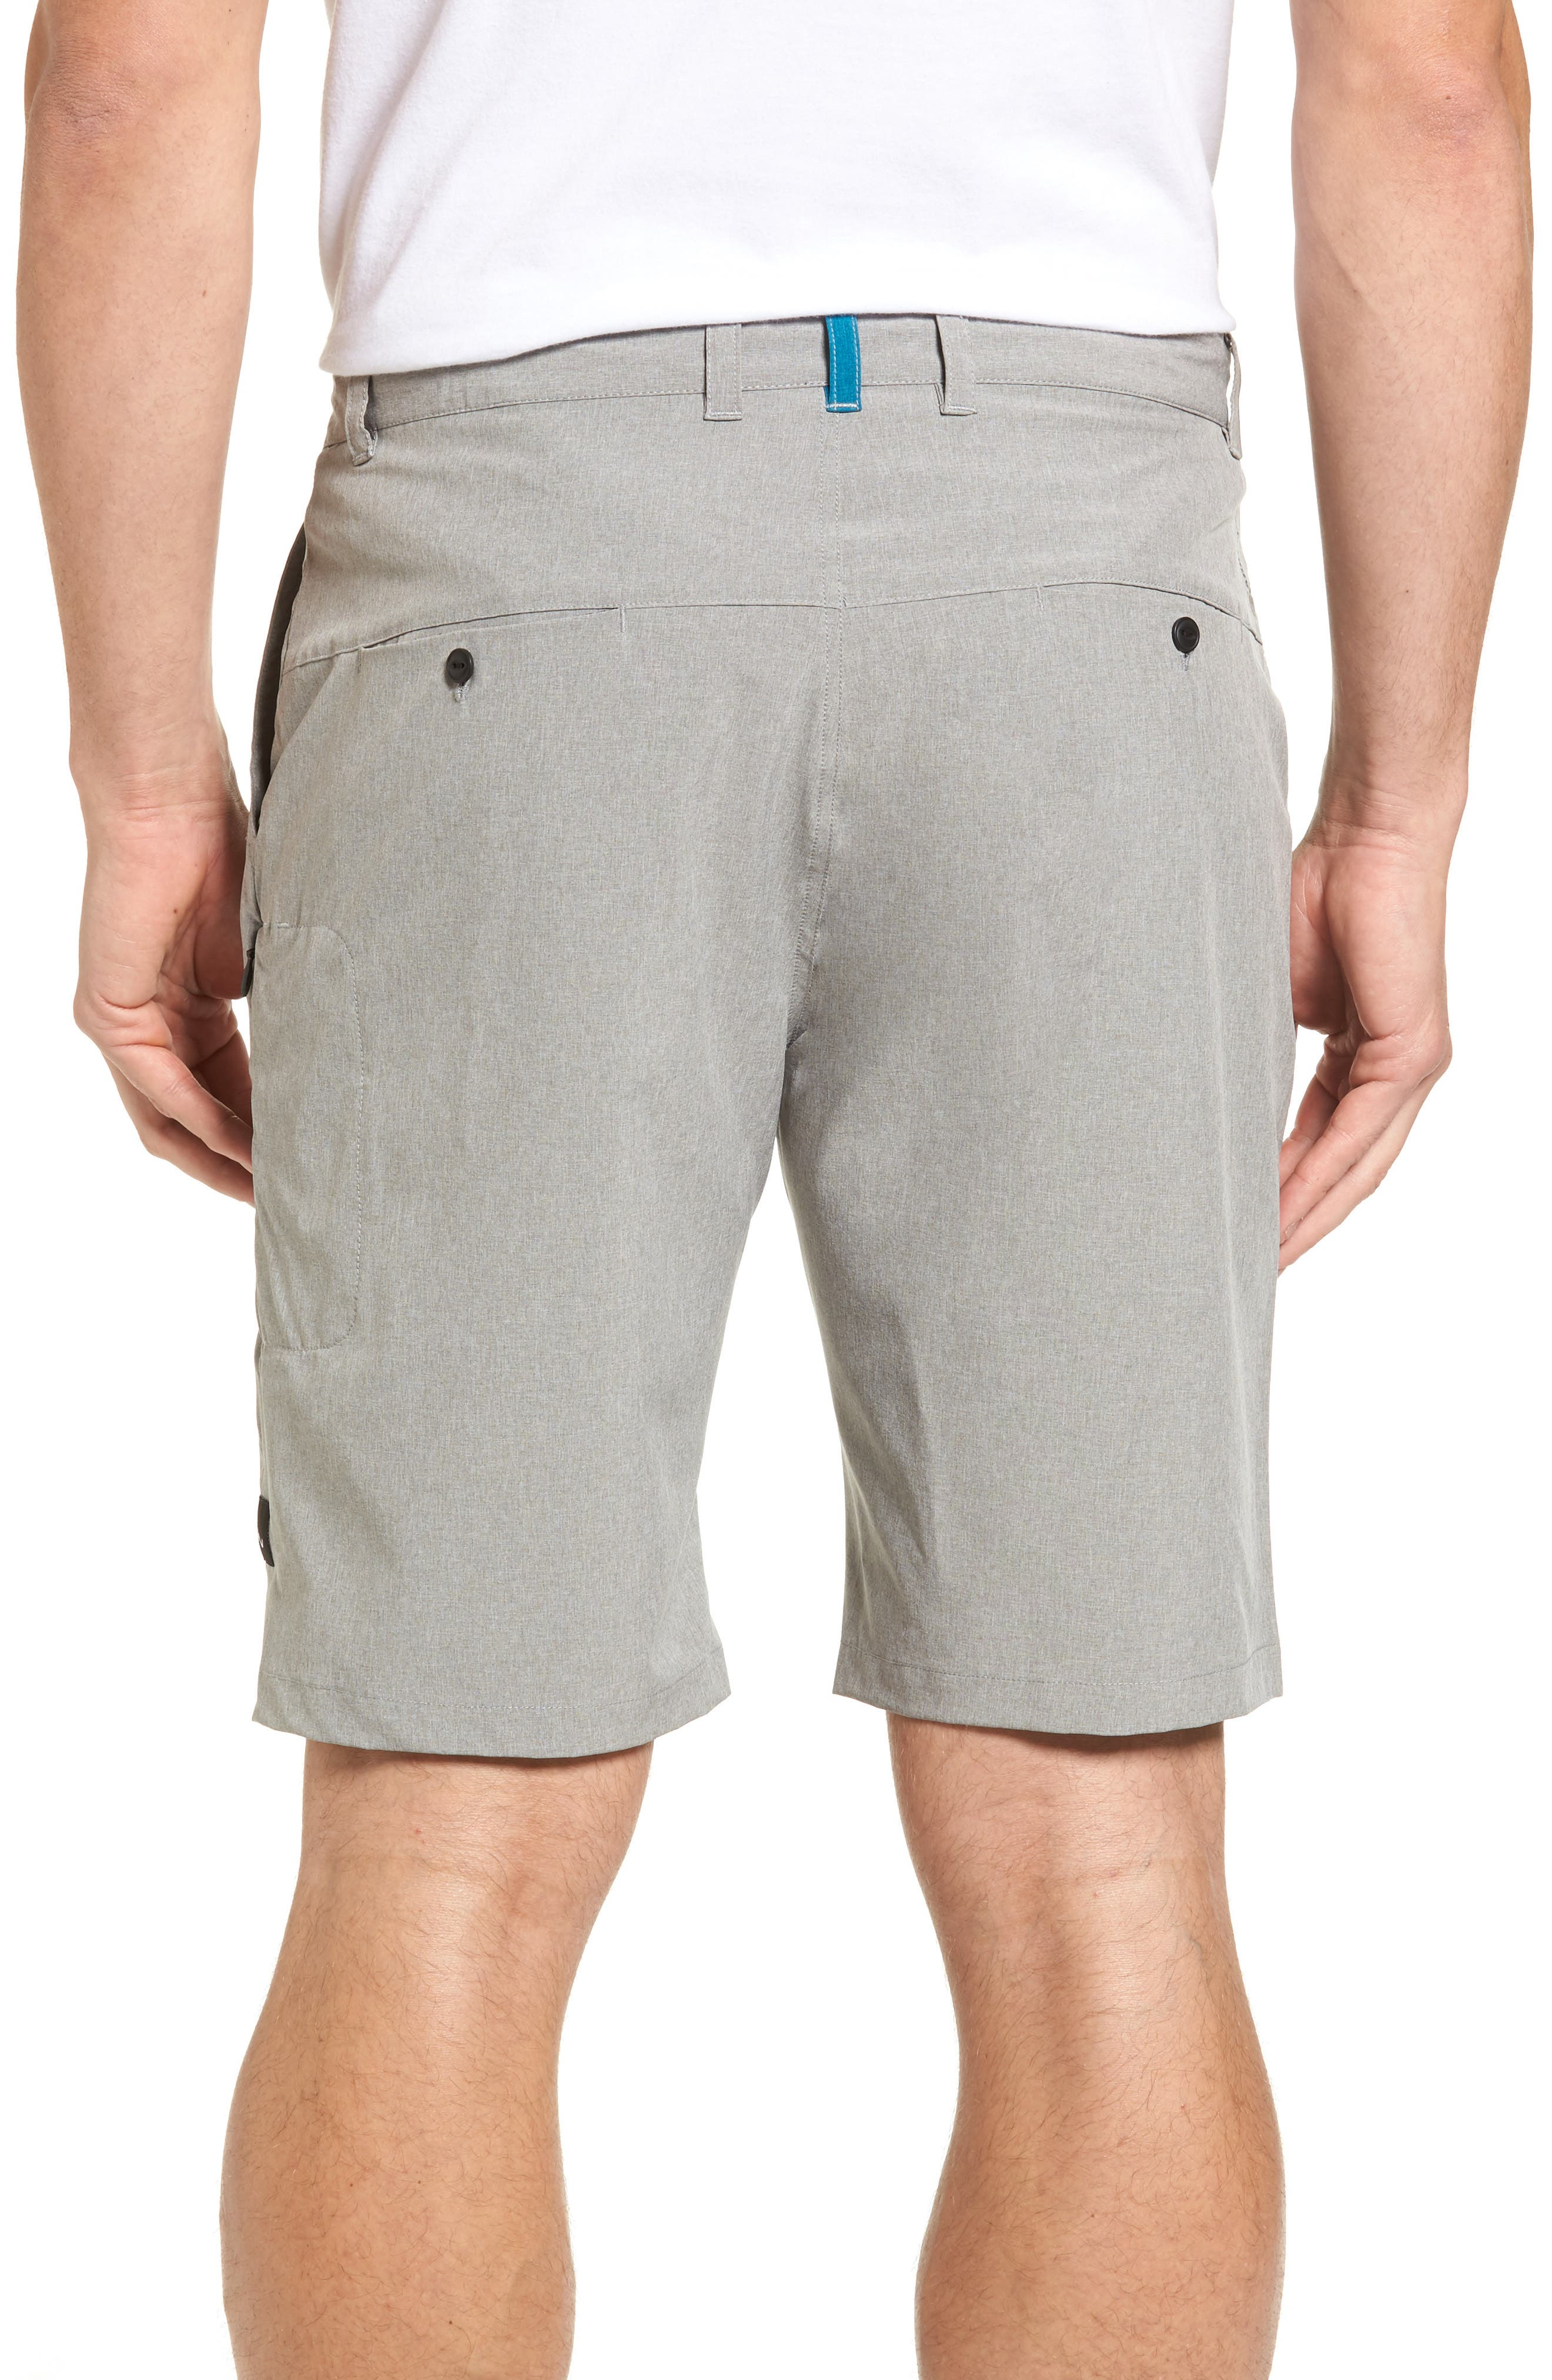 Freedom Carbon Cruiser Shorts,                             Alternate thumbnail 2, color,